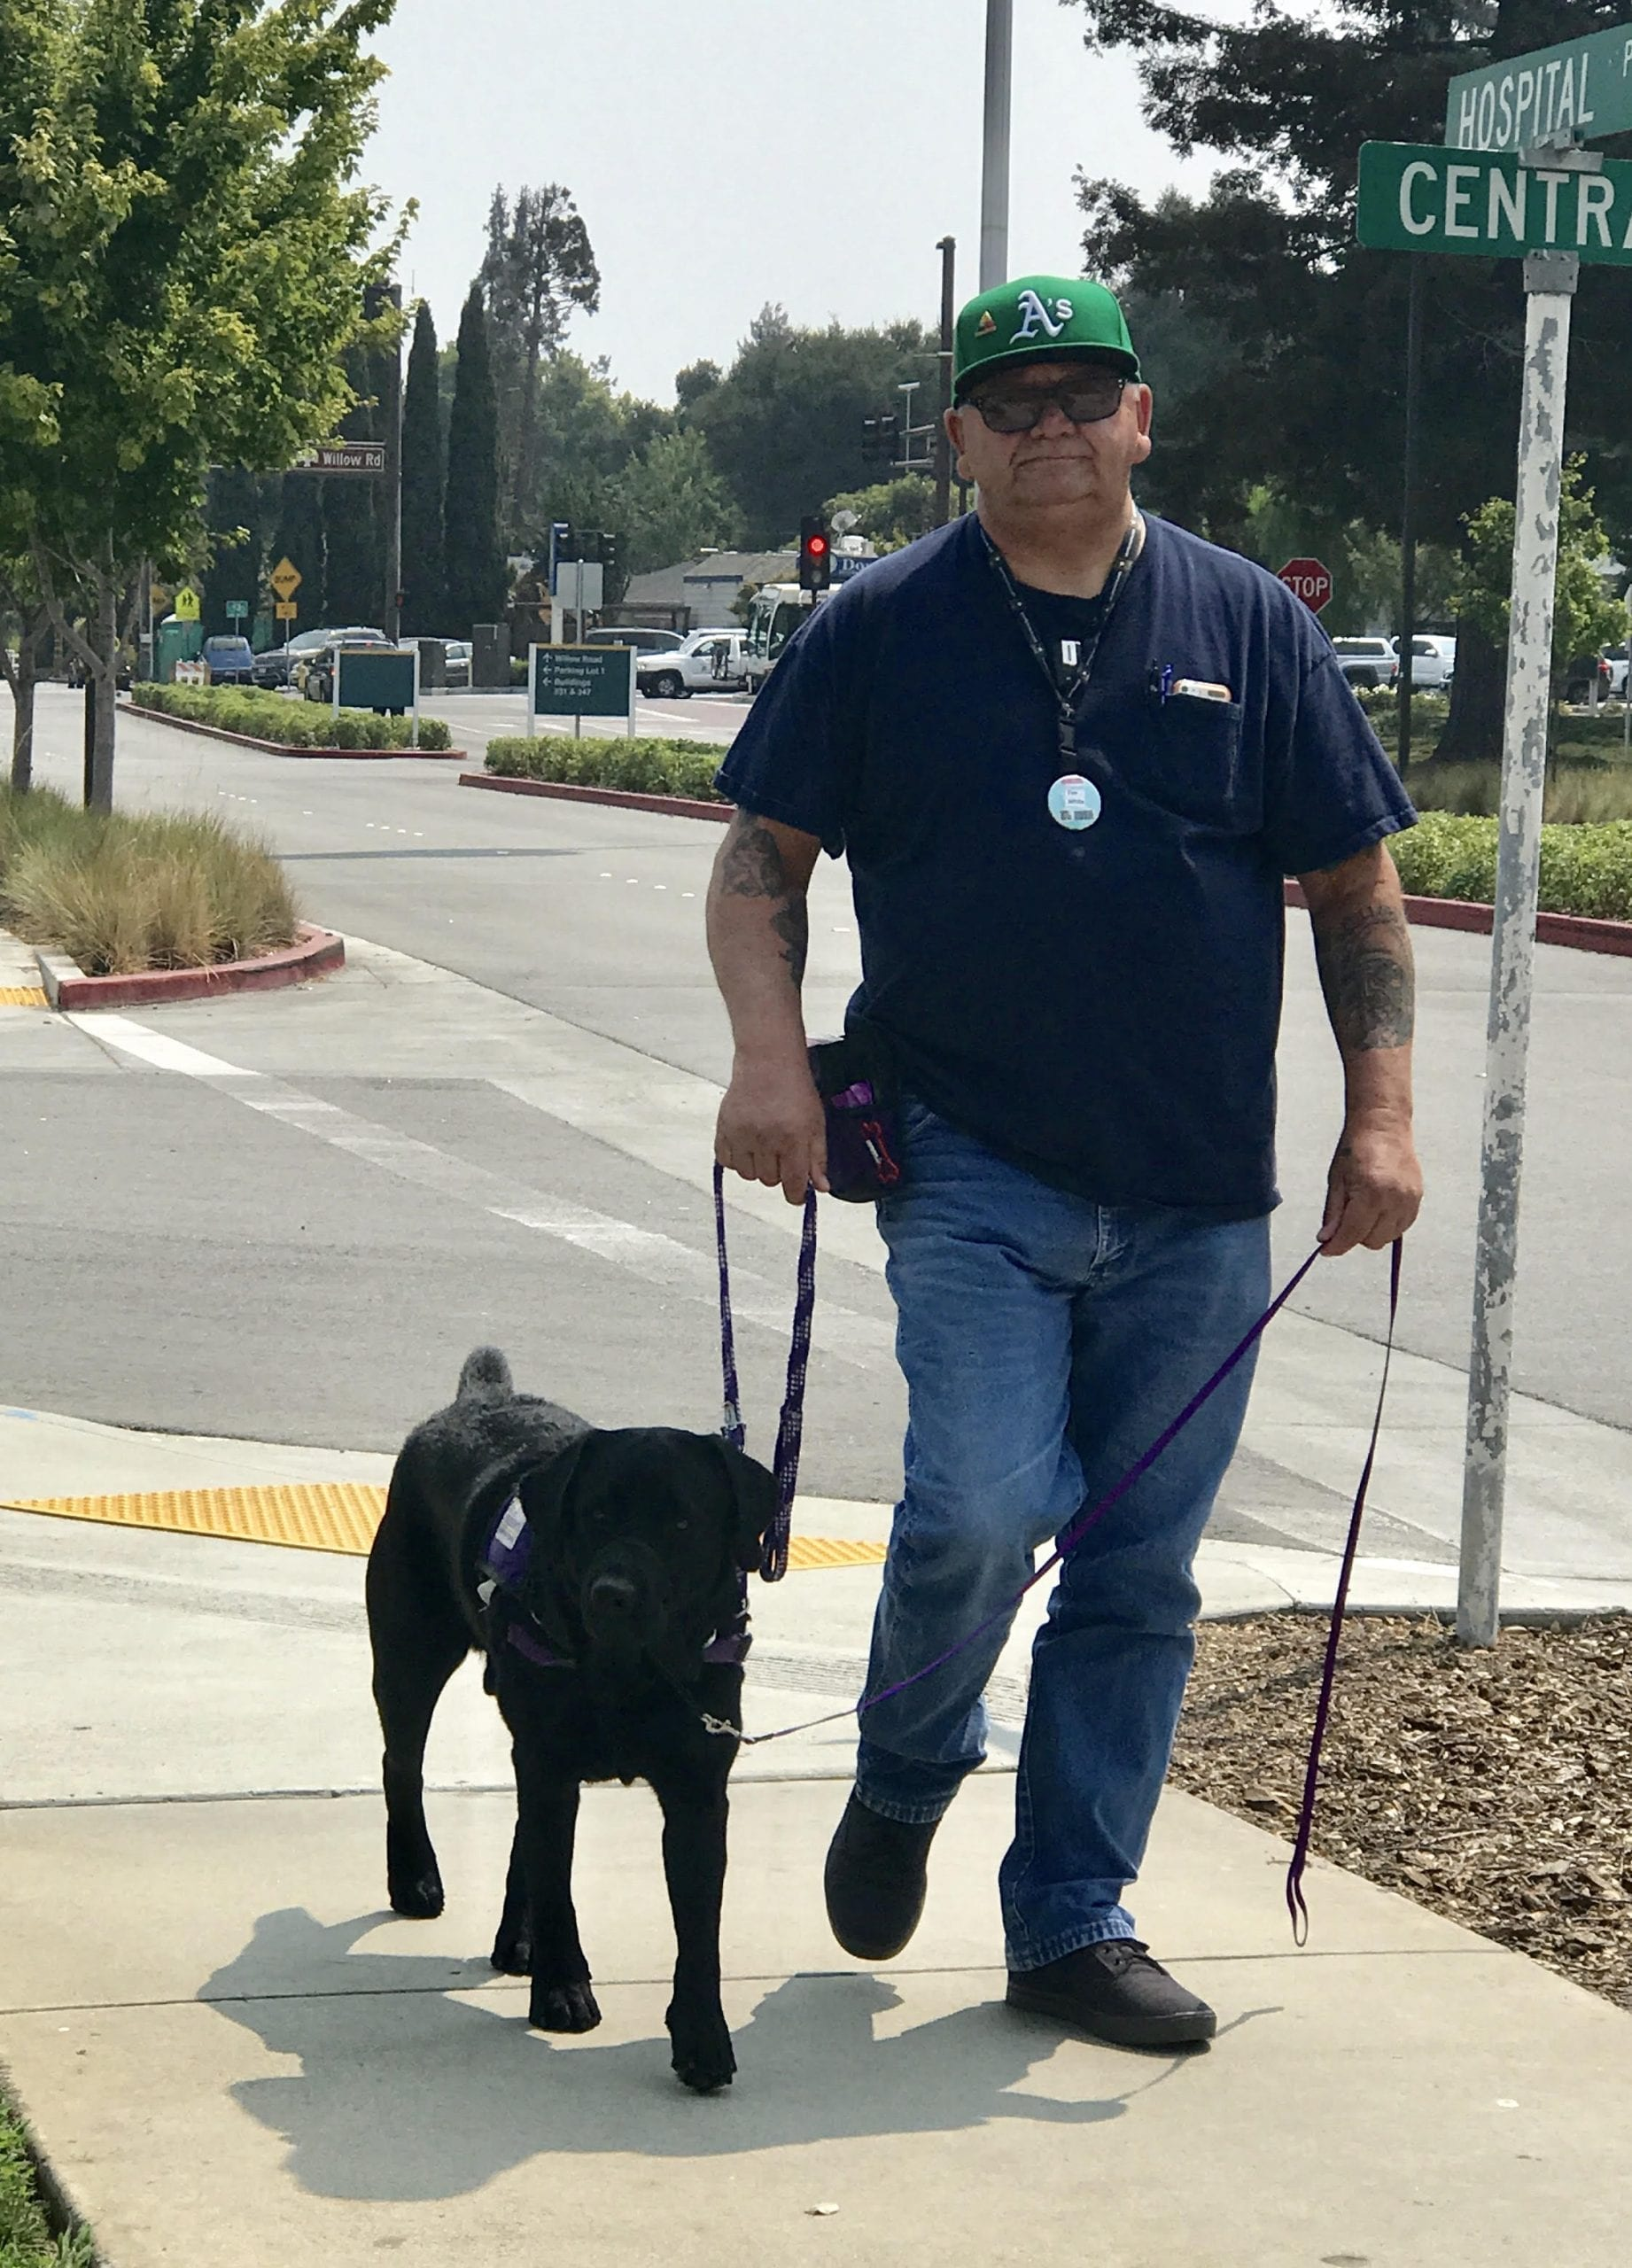 Timmy training on VA grounds with his Veteran.